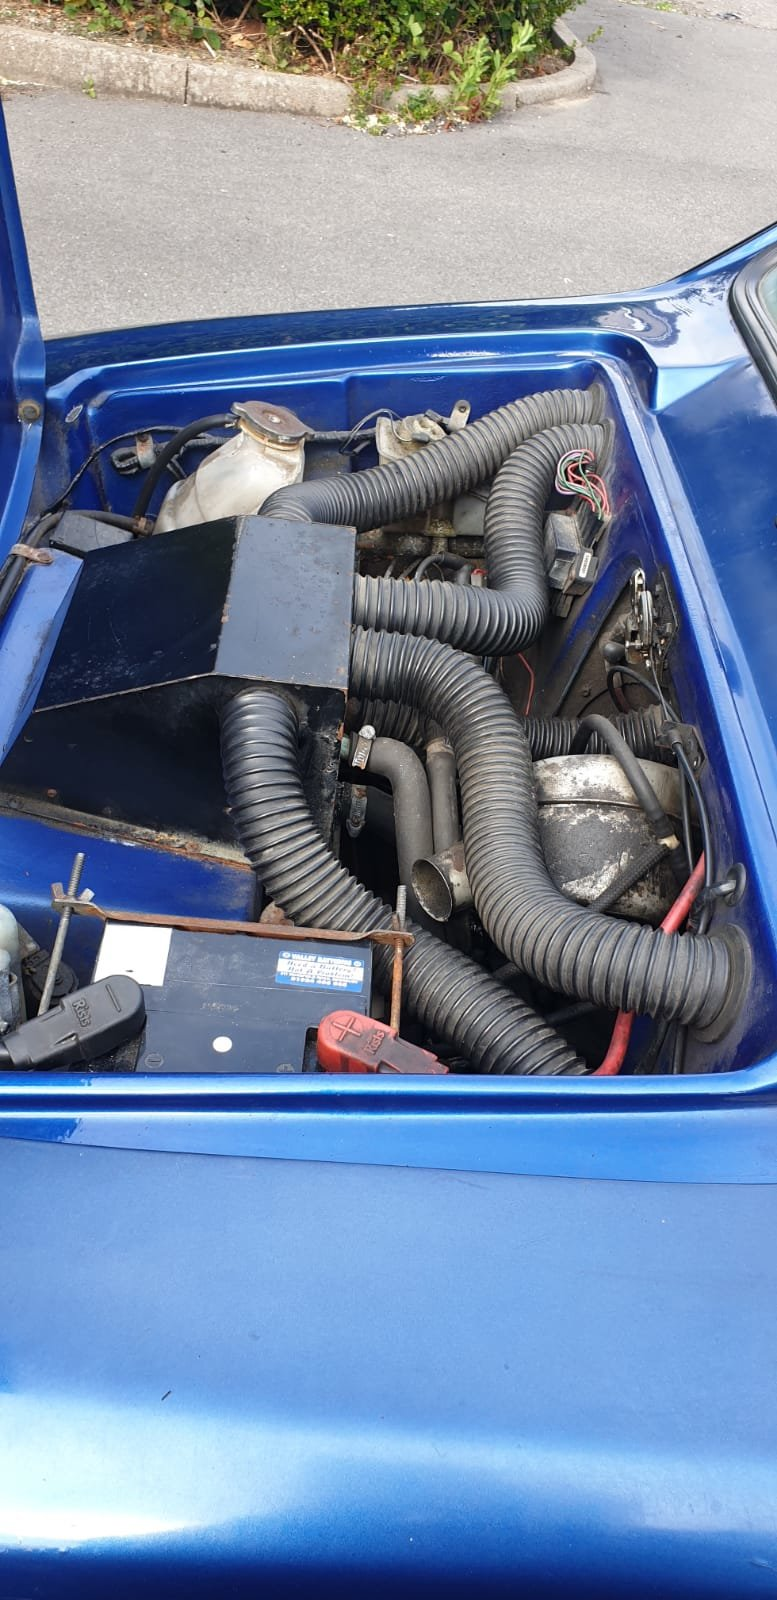 1999 Reliant robin slx v reg  For Sale (picture 2 of 5)